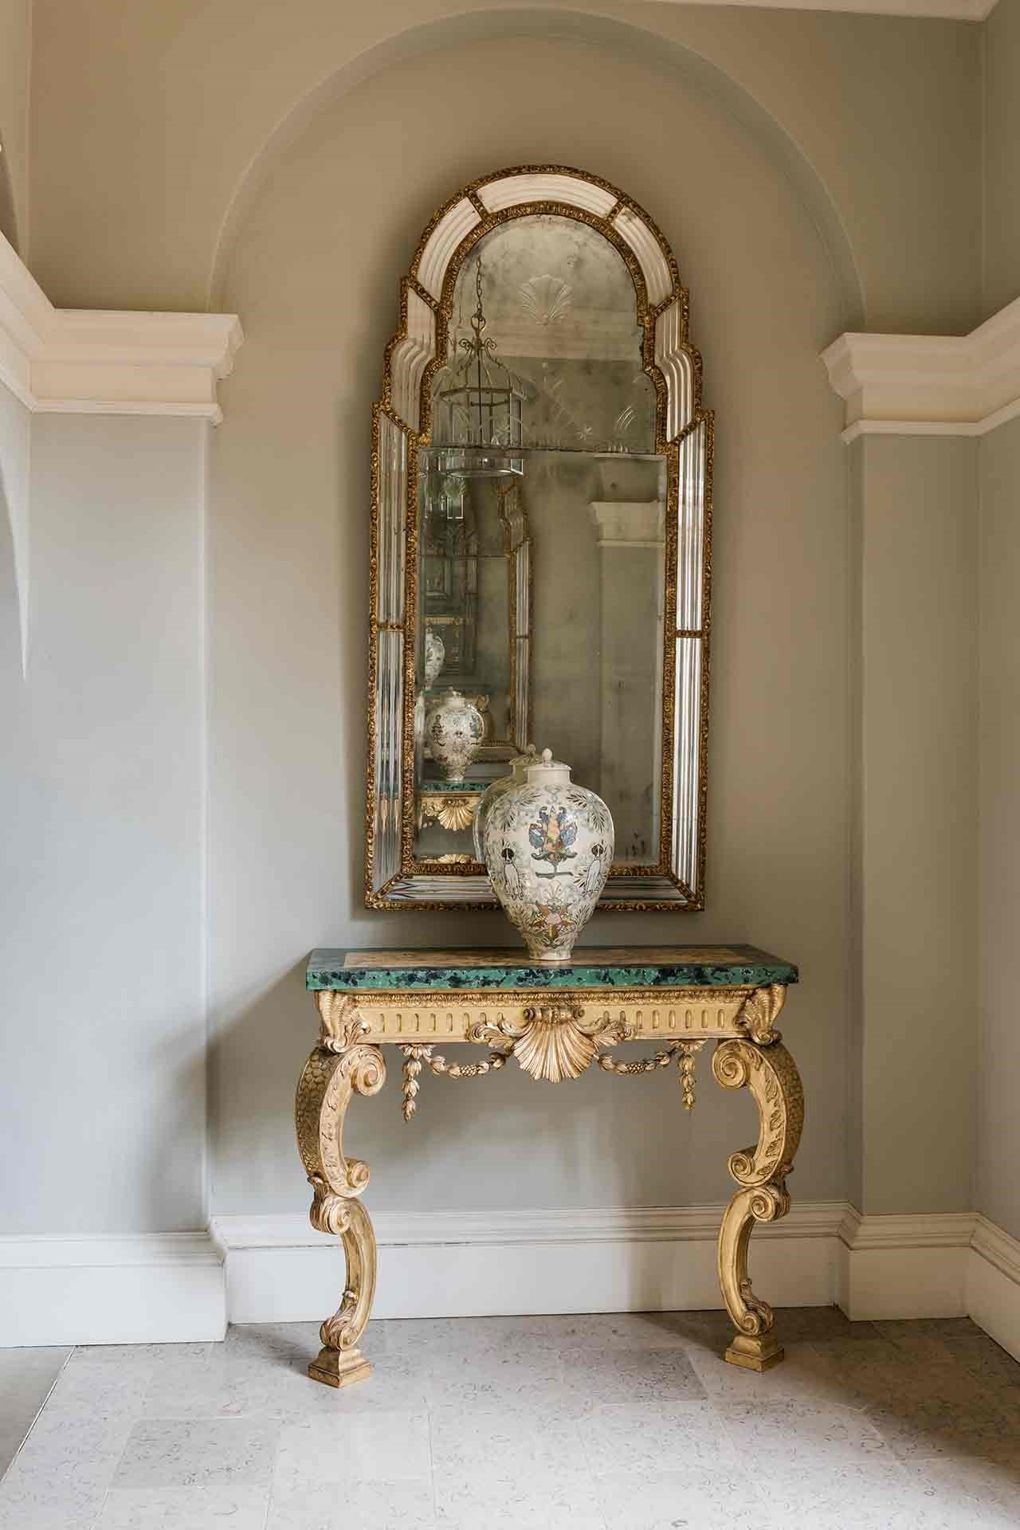 """[i]An ornate mirror and similarly detailed table occupy an alcove in one of the corridors.[/i]  Like this? Then you'll love  [link url=""""http://www.houseandgarden.co.uk/interiors/historic-interiors/historical-homes""""]Design Tips For Historical Homes[/link]"""